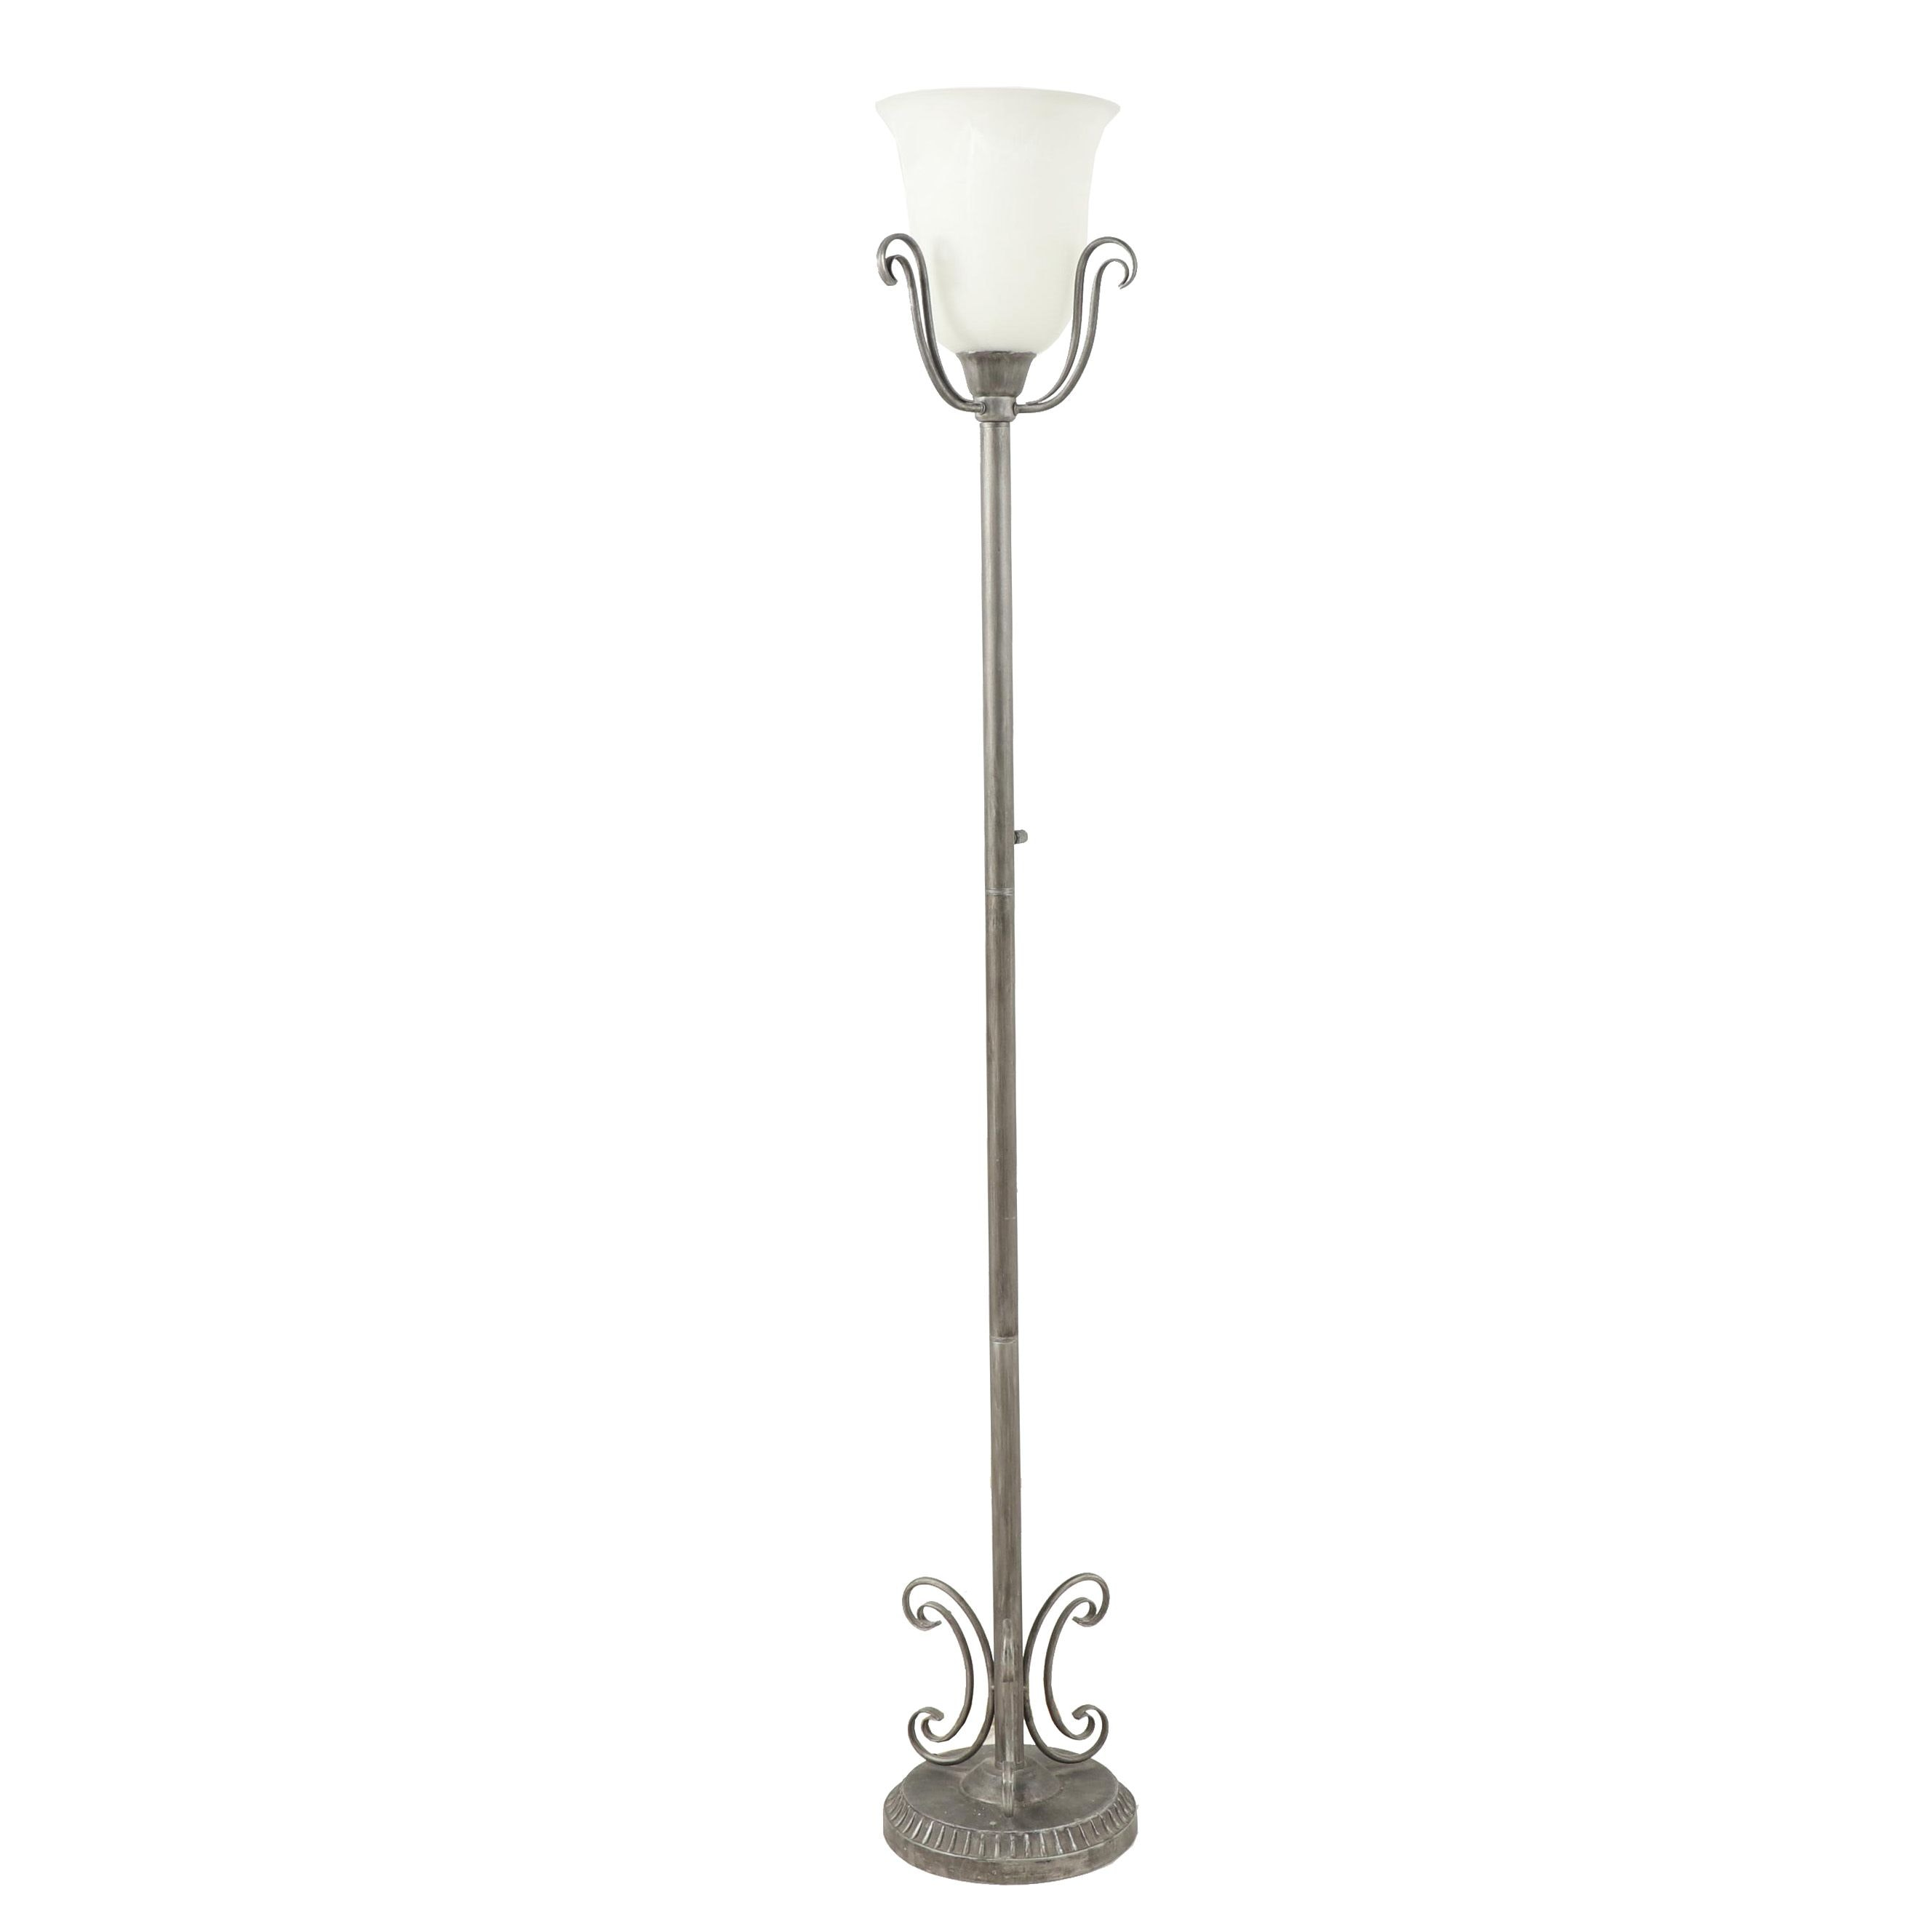 Brushed and Antiqued Metal Torchiere Floor Lamp with Frosted Glass Shade